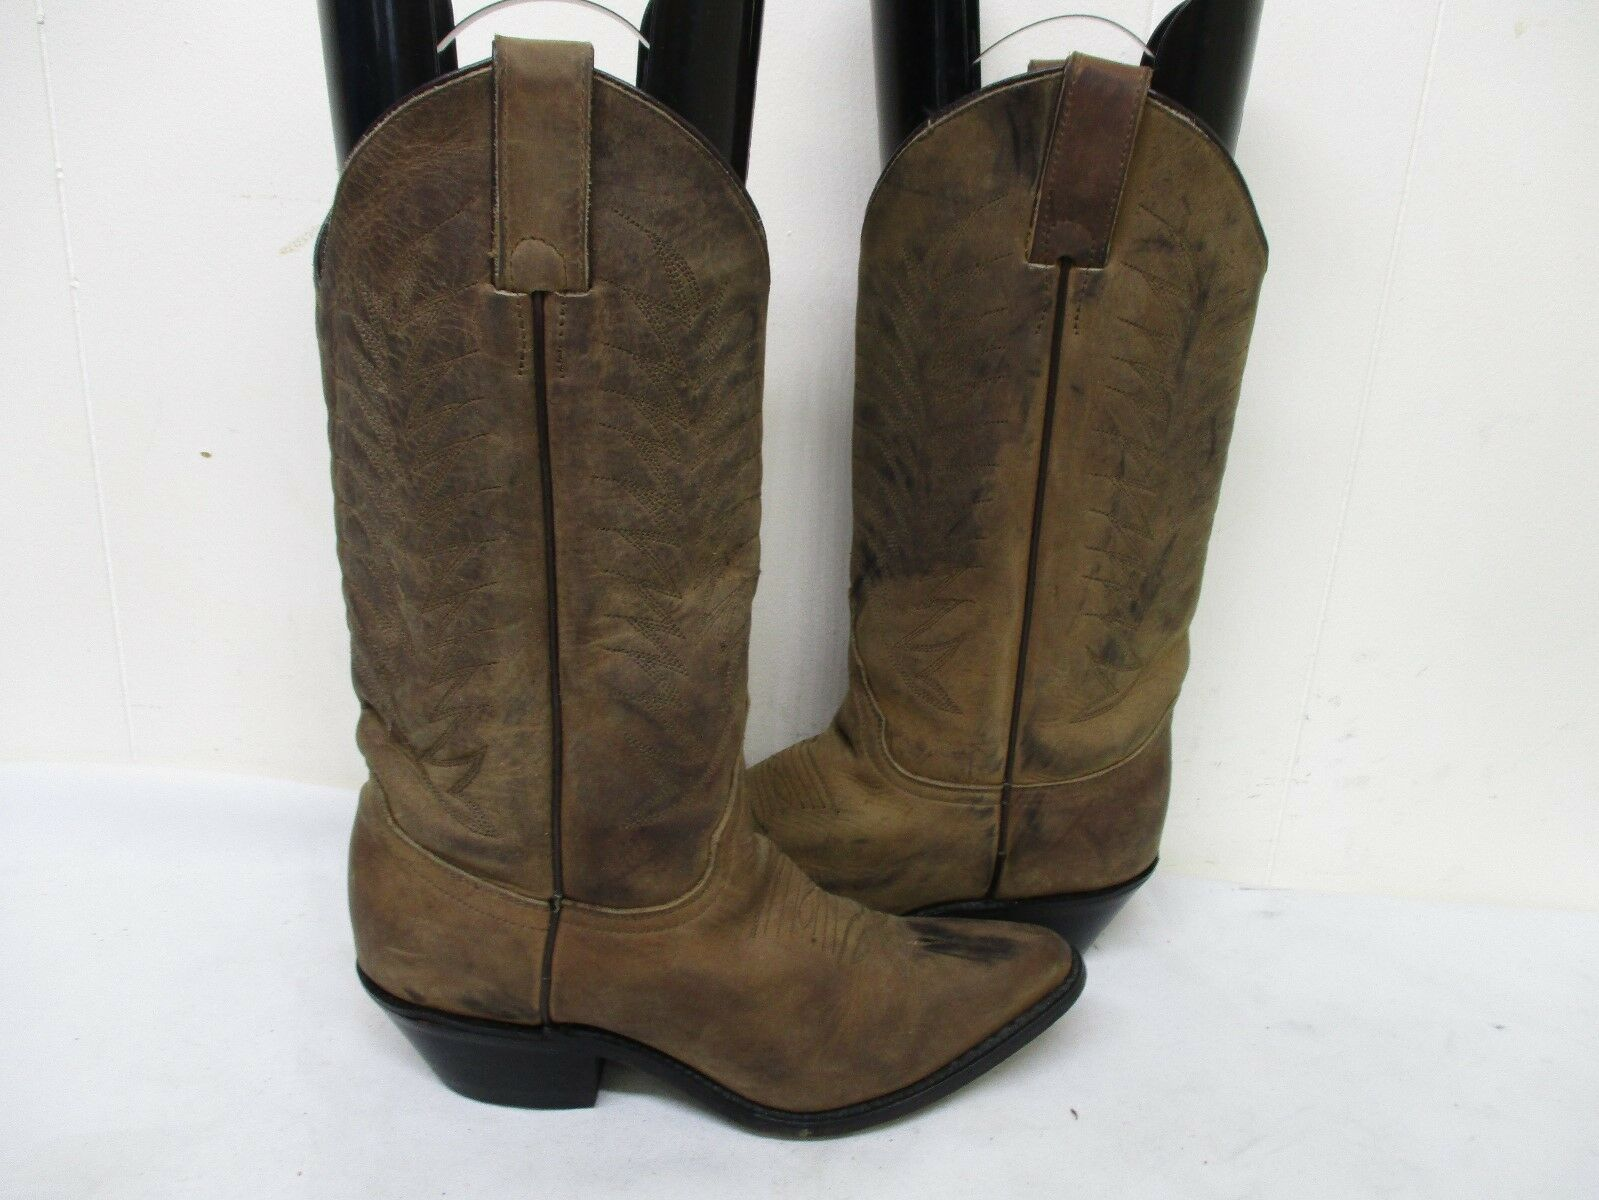 Diamond J Distressed Brown Leather Cowboy Boots Womens Size 5 B Style 51013L